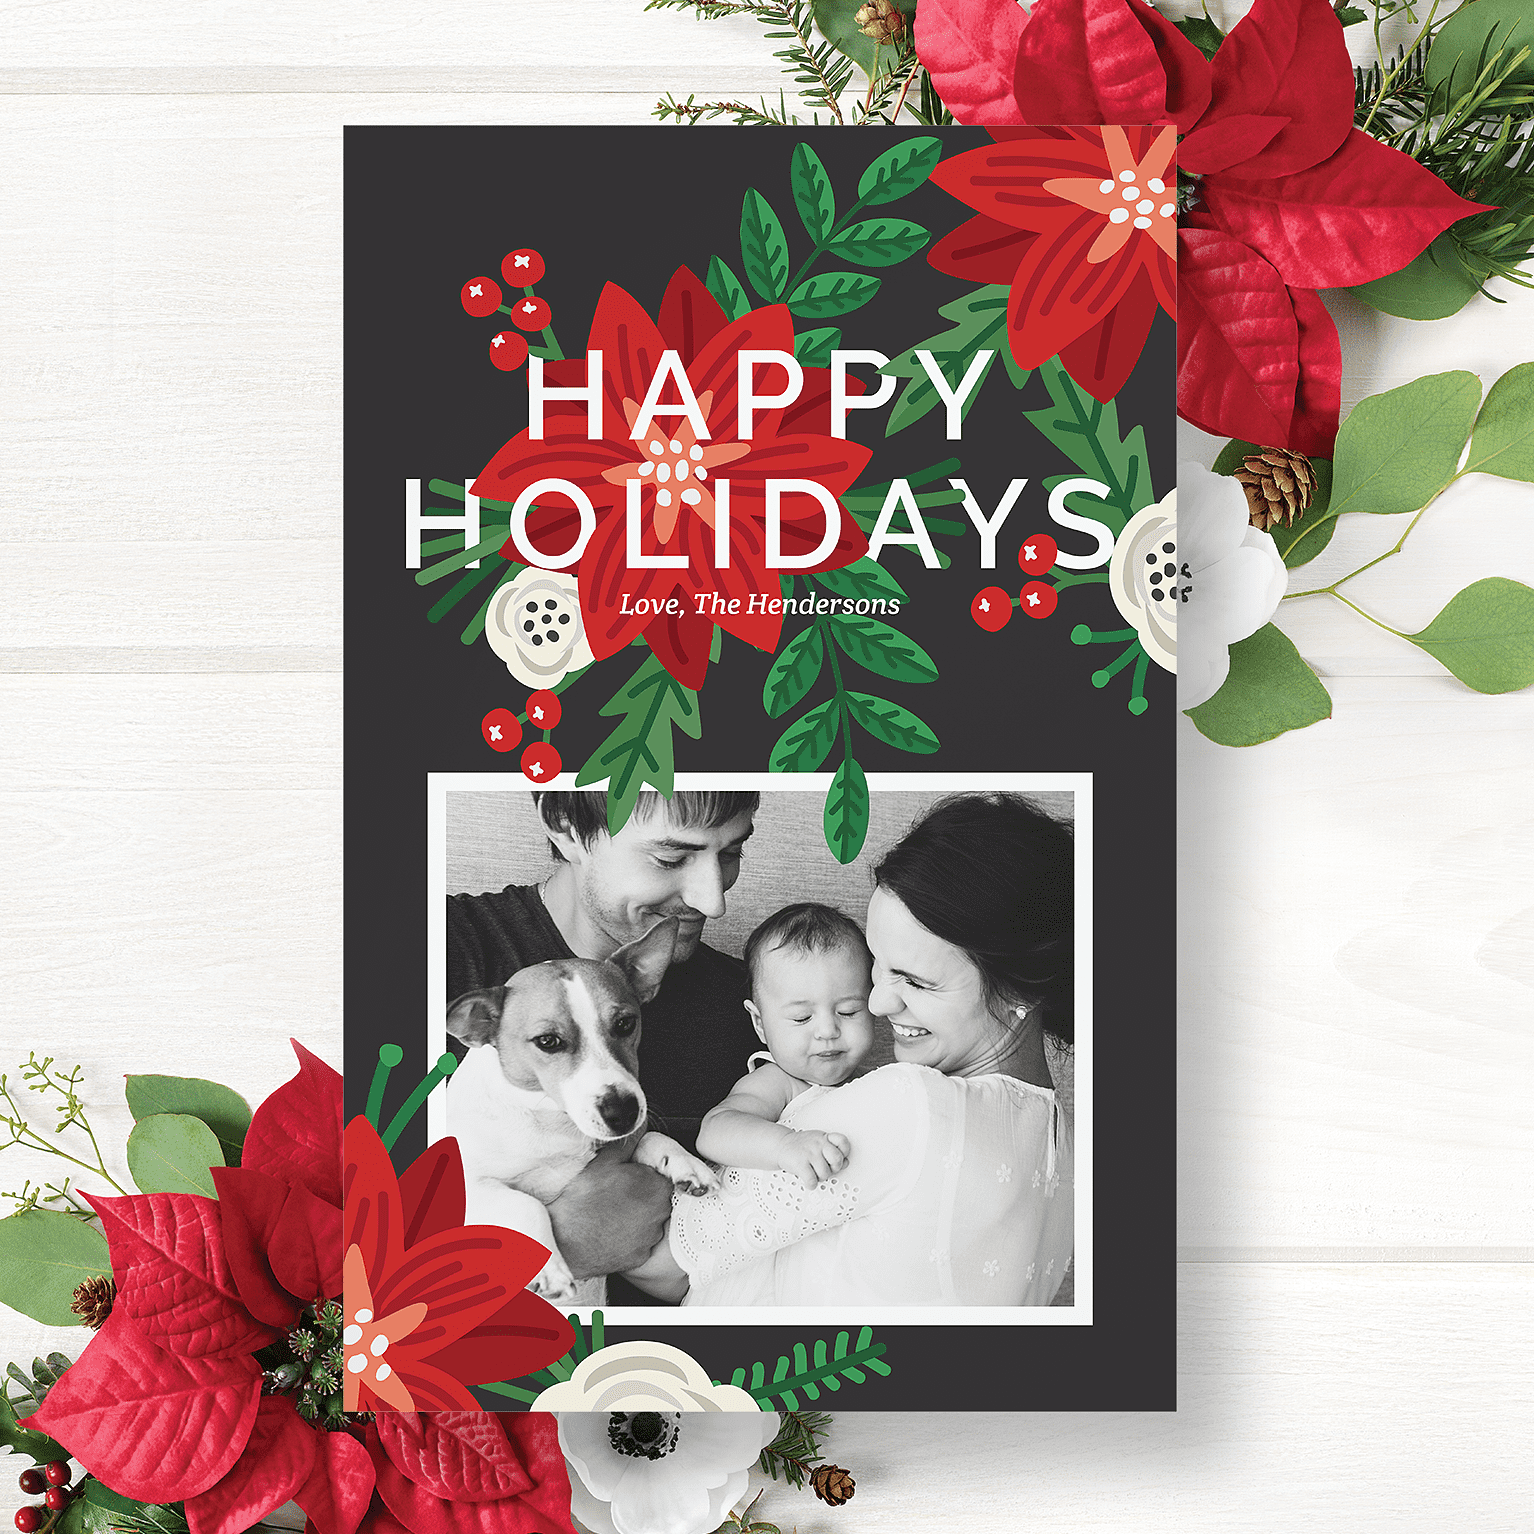 Christmas Cards Christmas Cards, Personalized Holiday Cards | Vistaprint